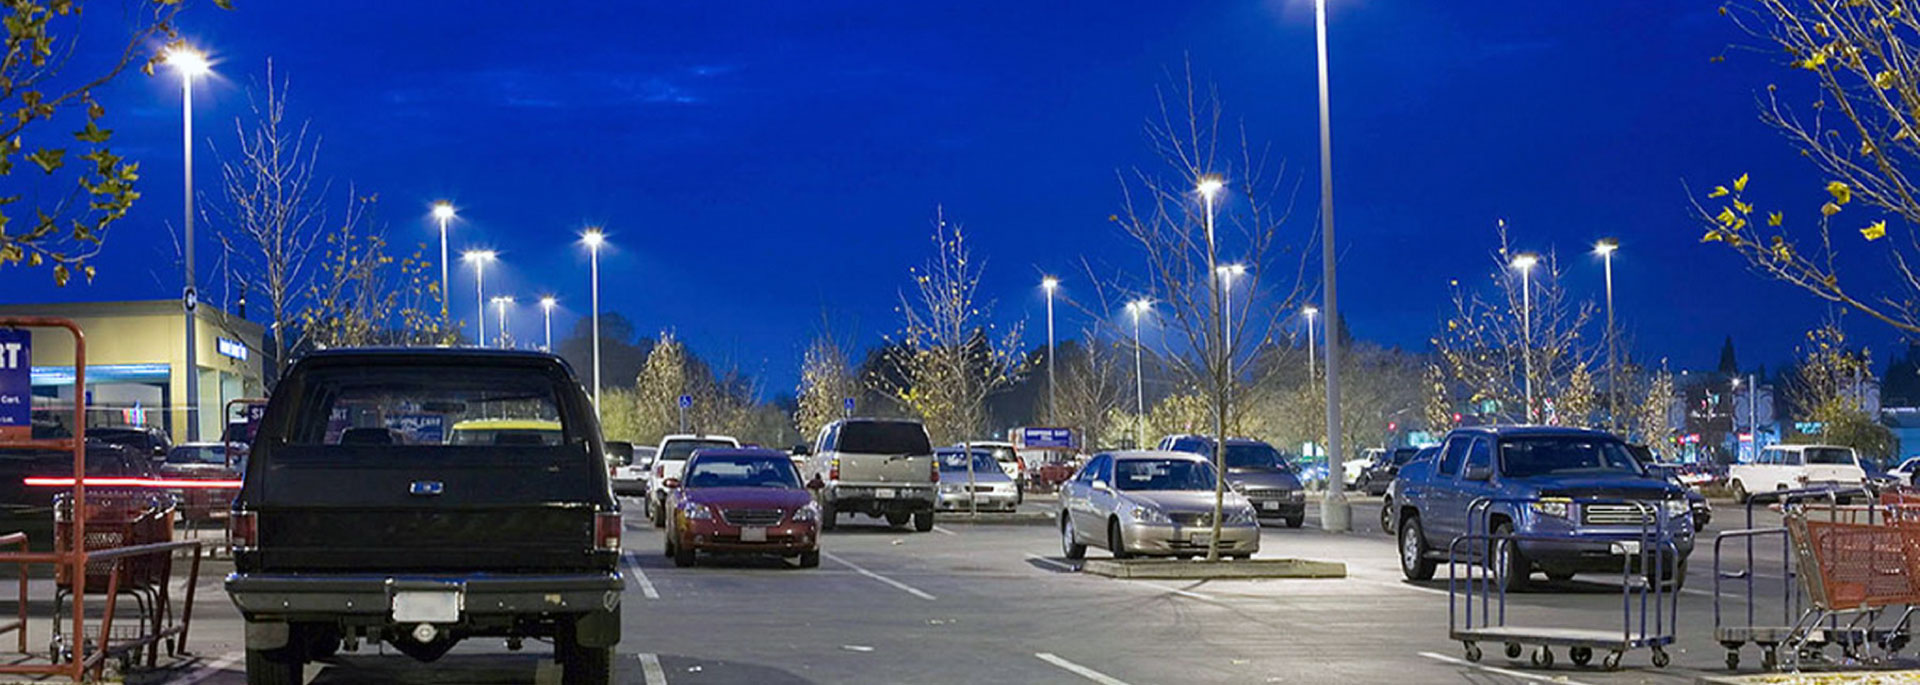 Airius LED Lighting Car Park Lights 7